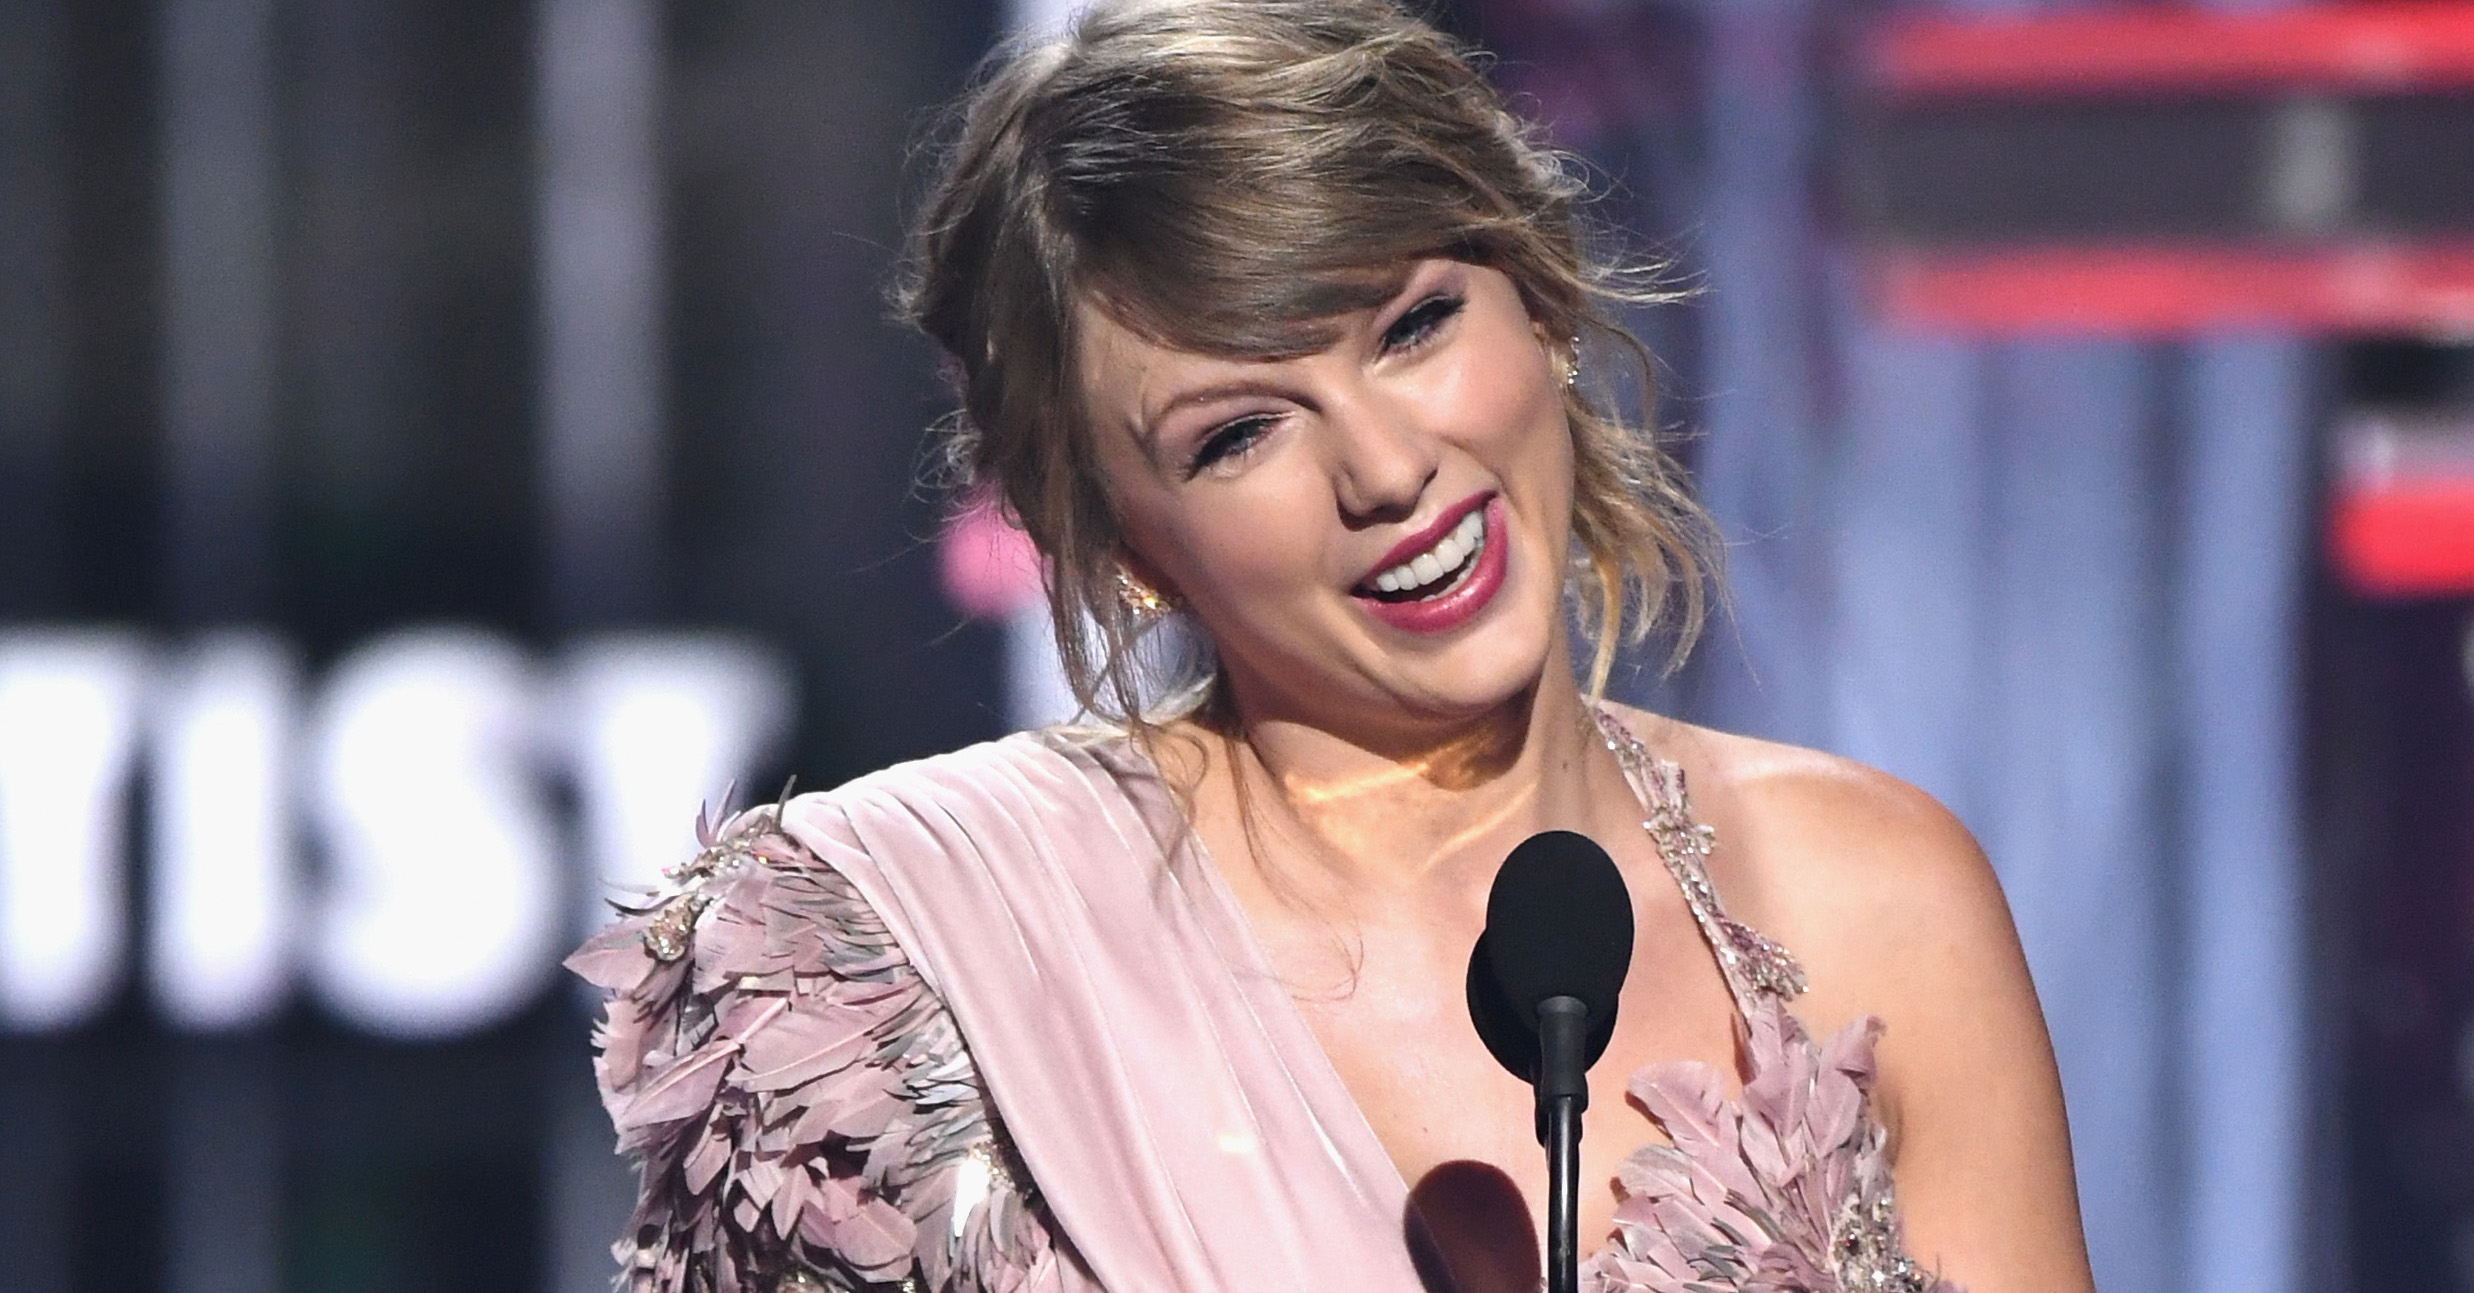 Taylor-Swift-Meets-The-Team-Who-Left-Her-Inspiring-Messages-During-Her-Sexual-Assault-Trial